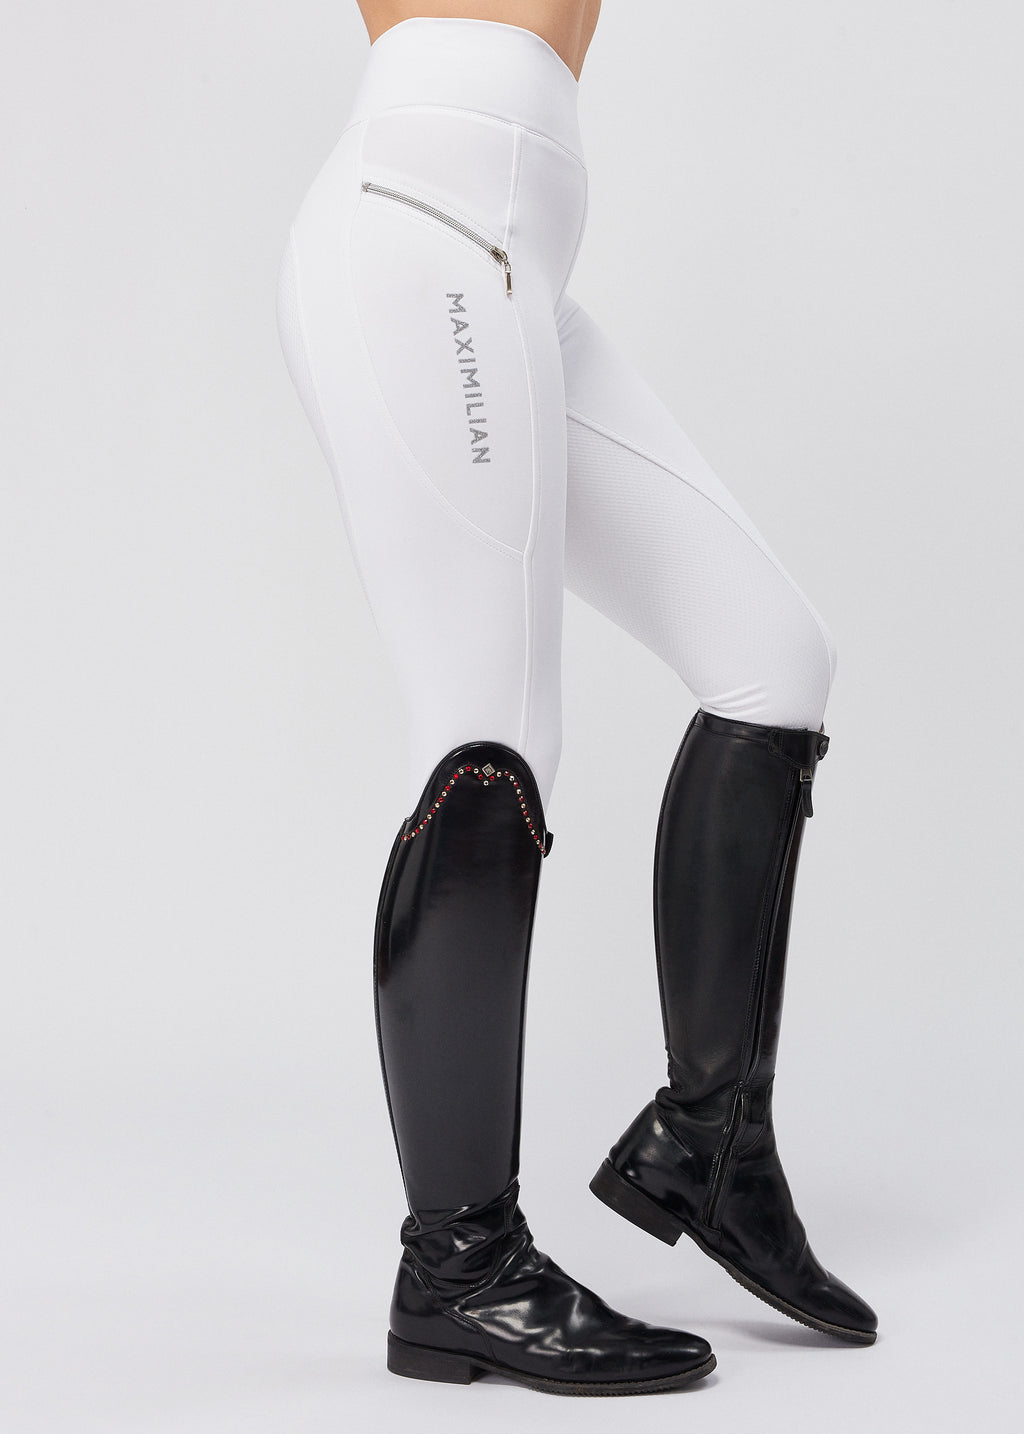 Charm Riding Leggings - White